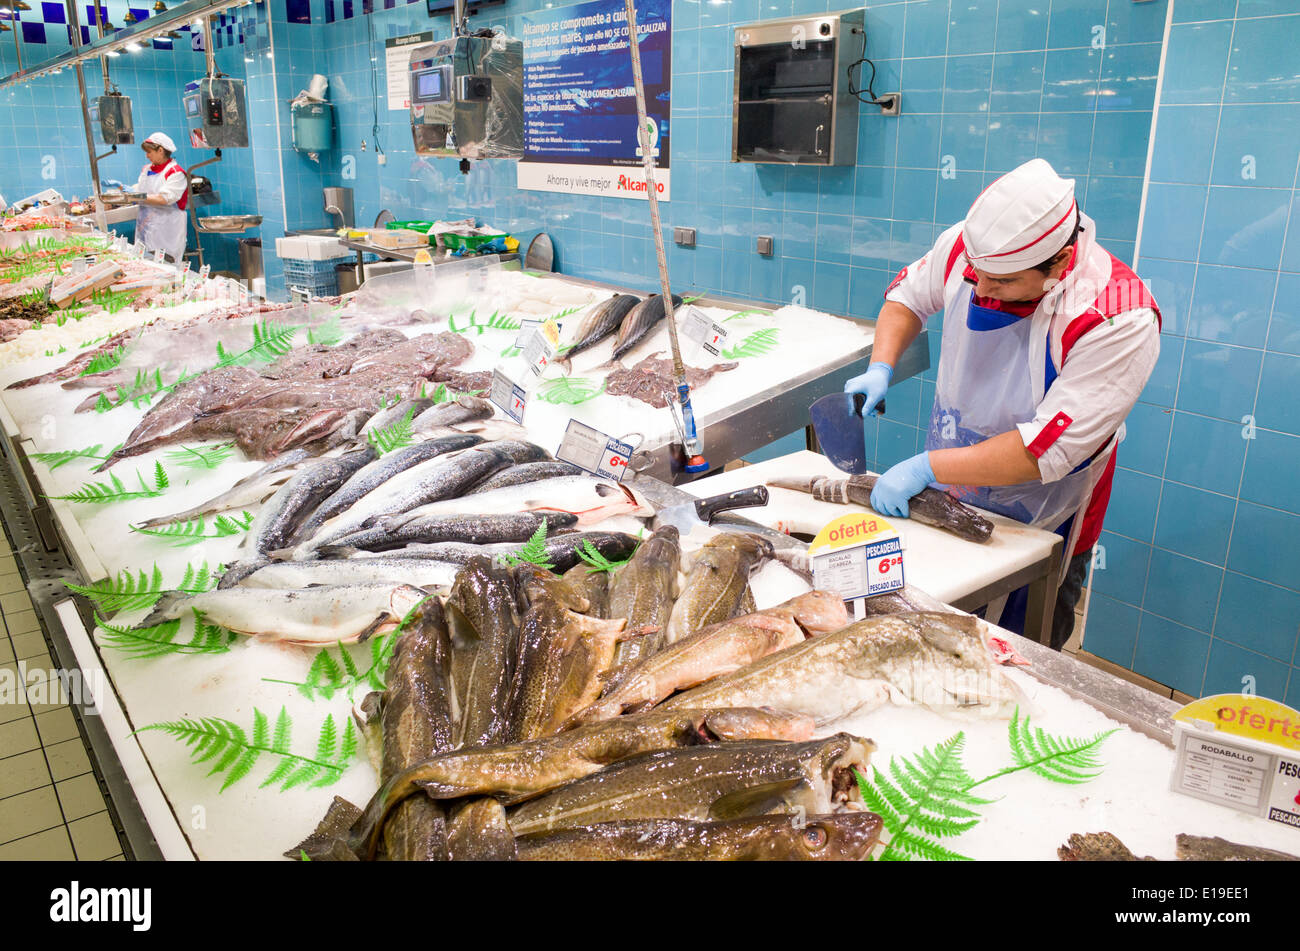 Fishmonger cutting fresh fish at Alcampo supermarket, Madrid, Spain - Stock Image